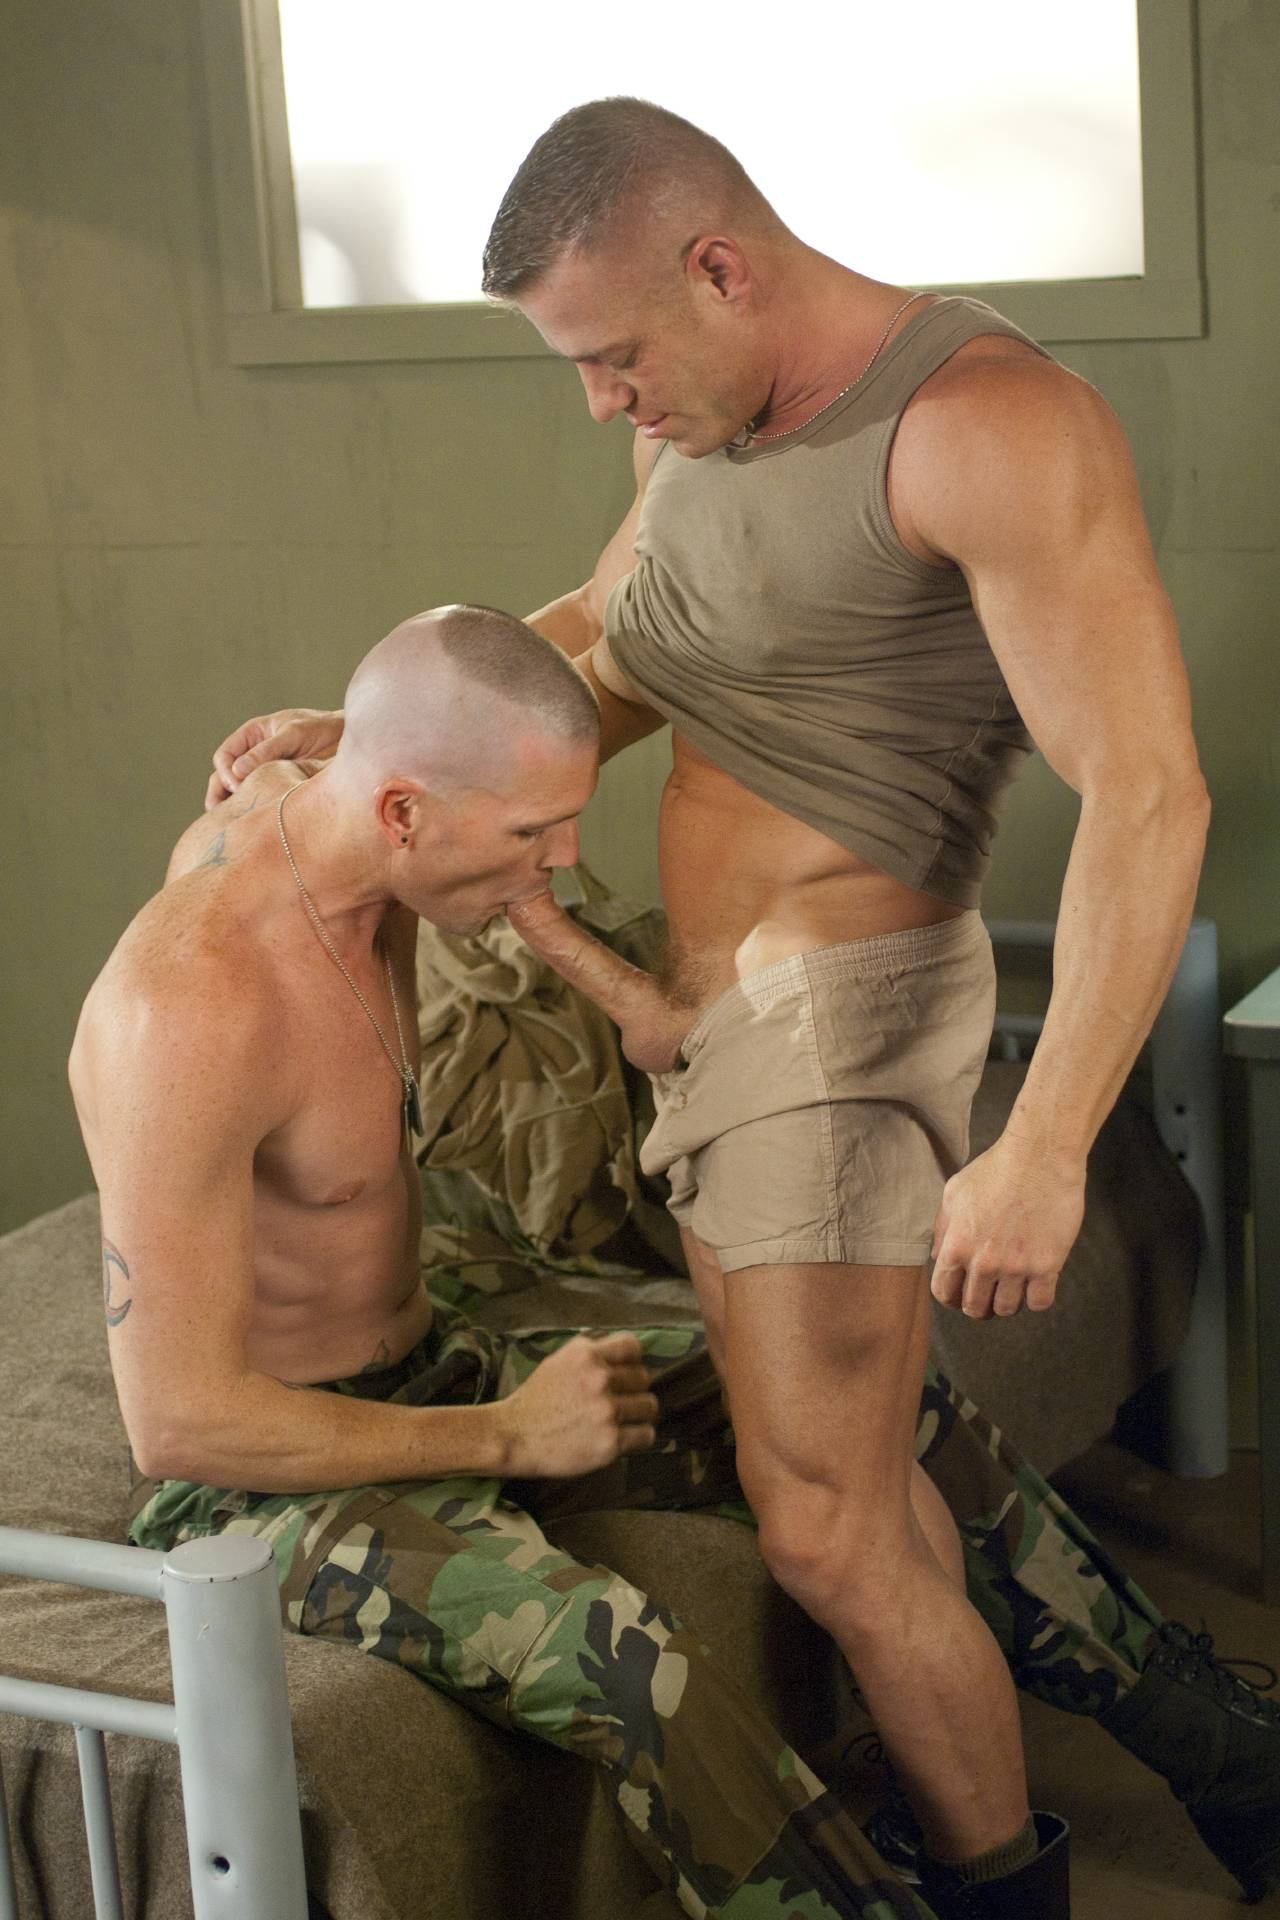 Army gay boy movies and military men at the doctor naked yes drill